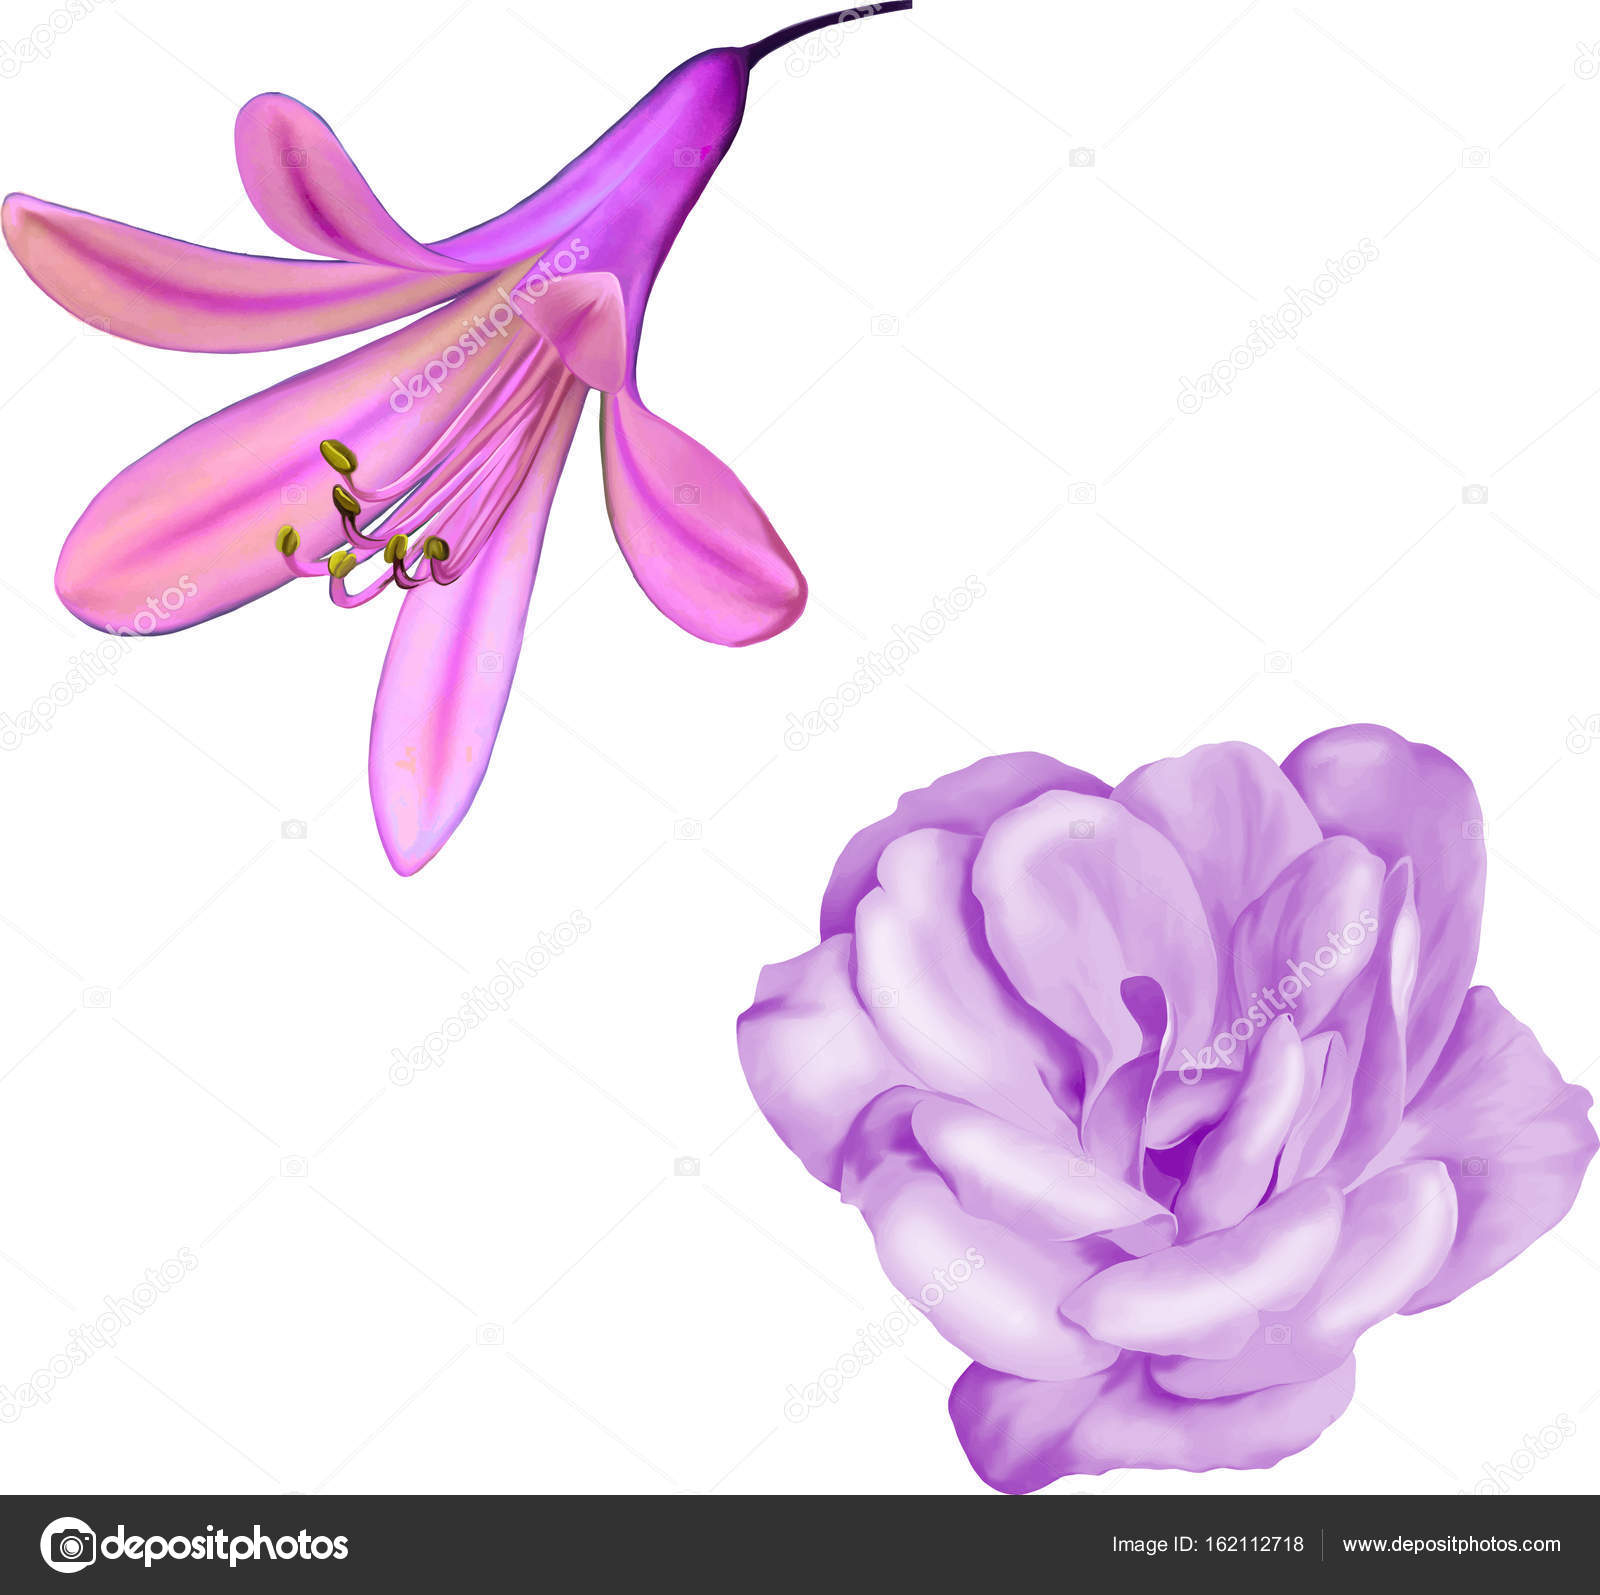 Pink camellia and purple lily flowers stock photo artnature pink camellia and purple lily flowers stock photo izmirmasajfo